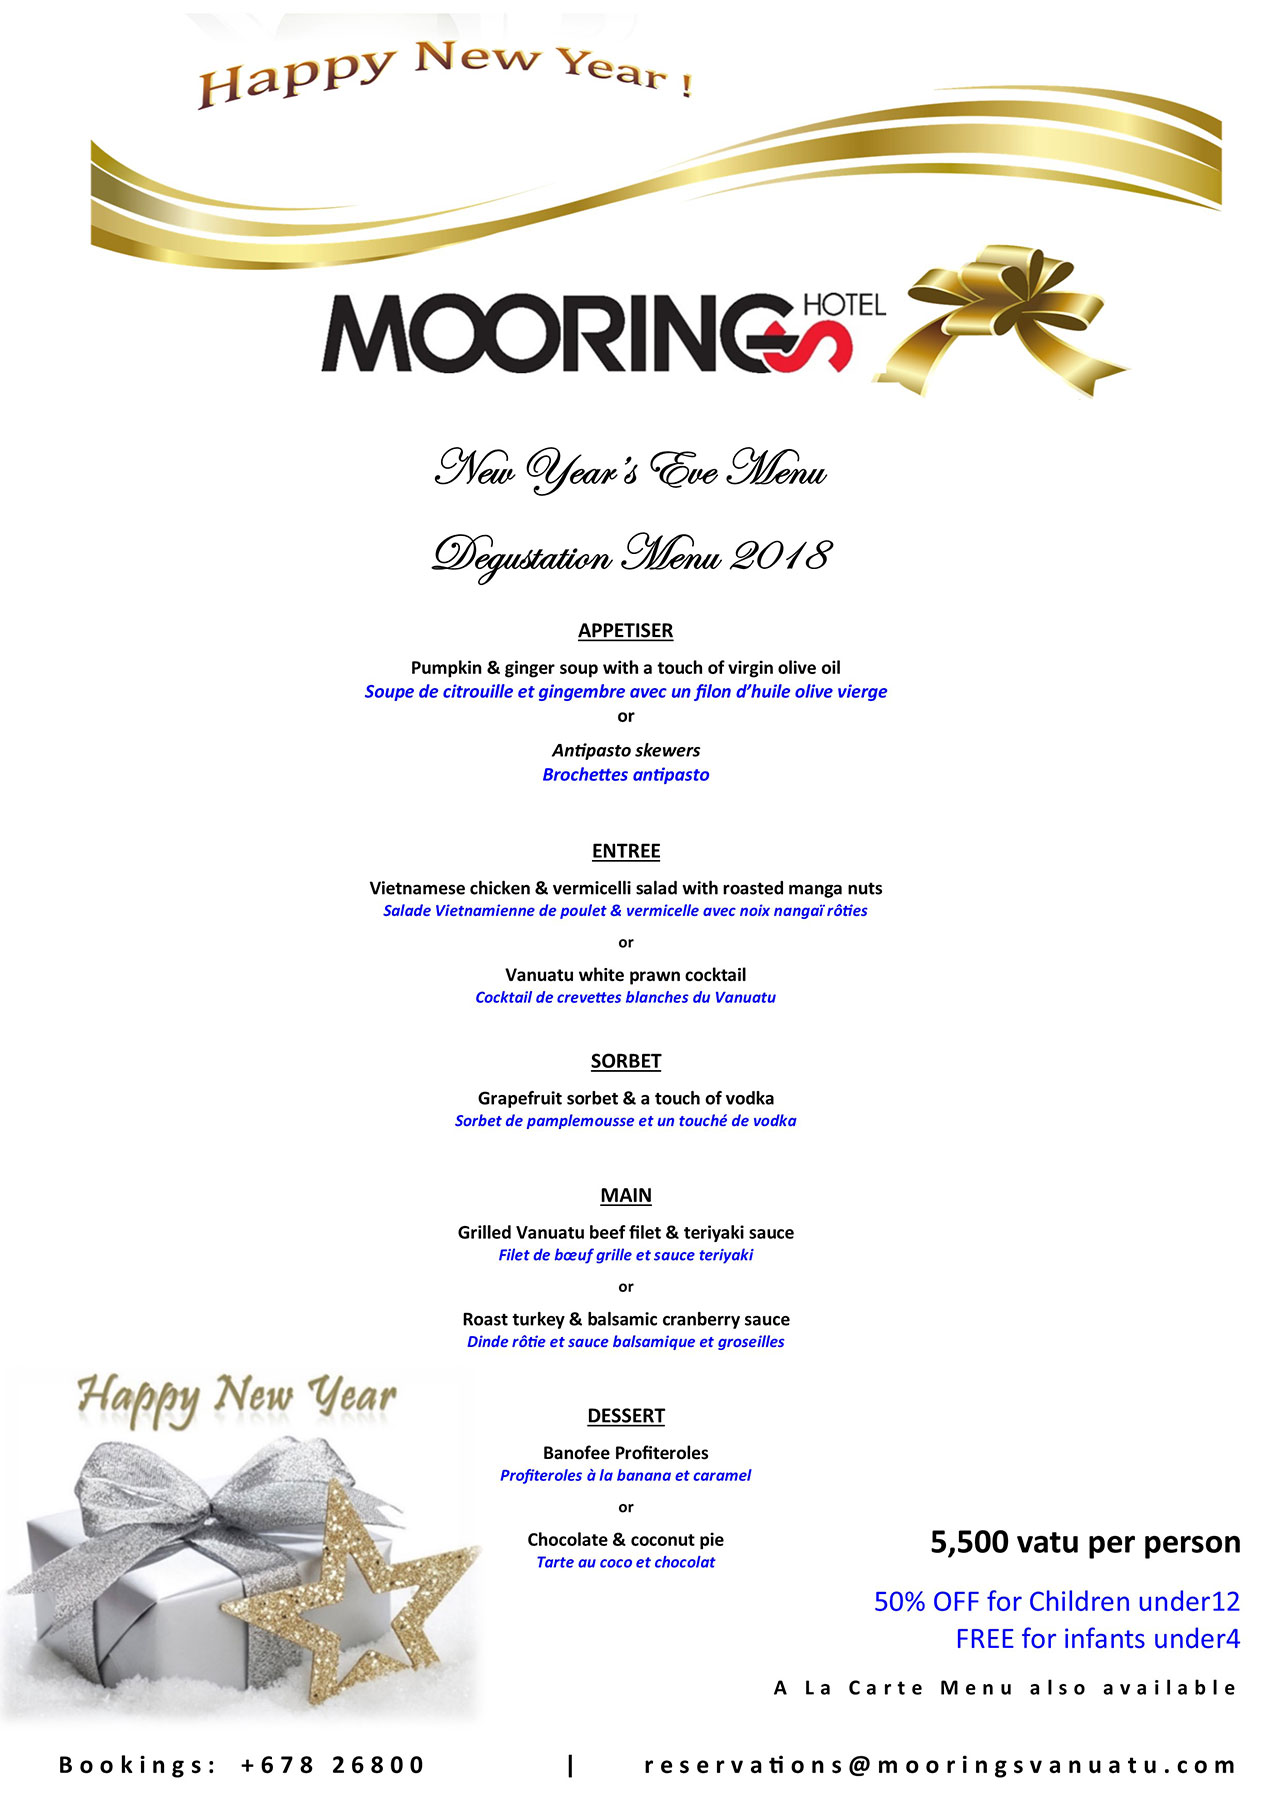 New Year's Eve 2017 Dinner Menu